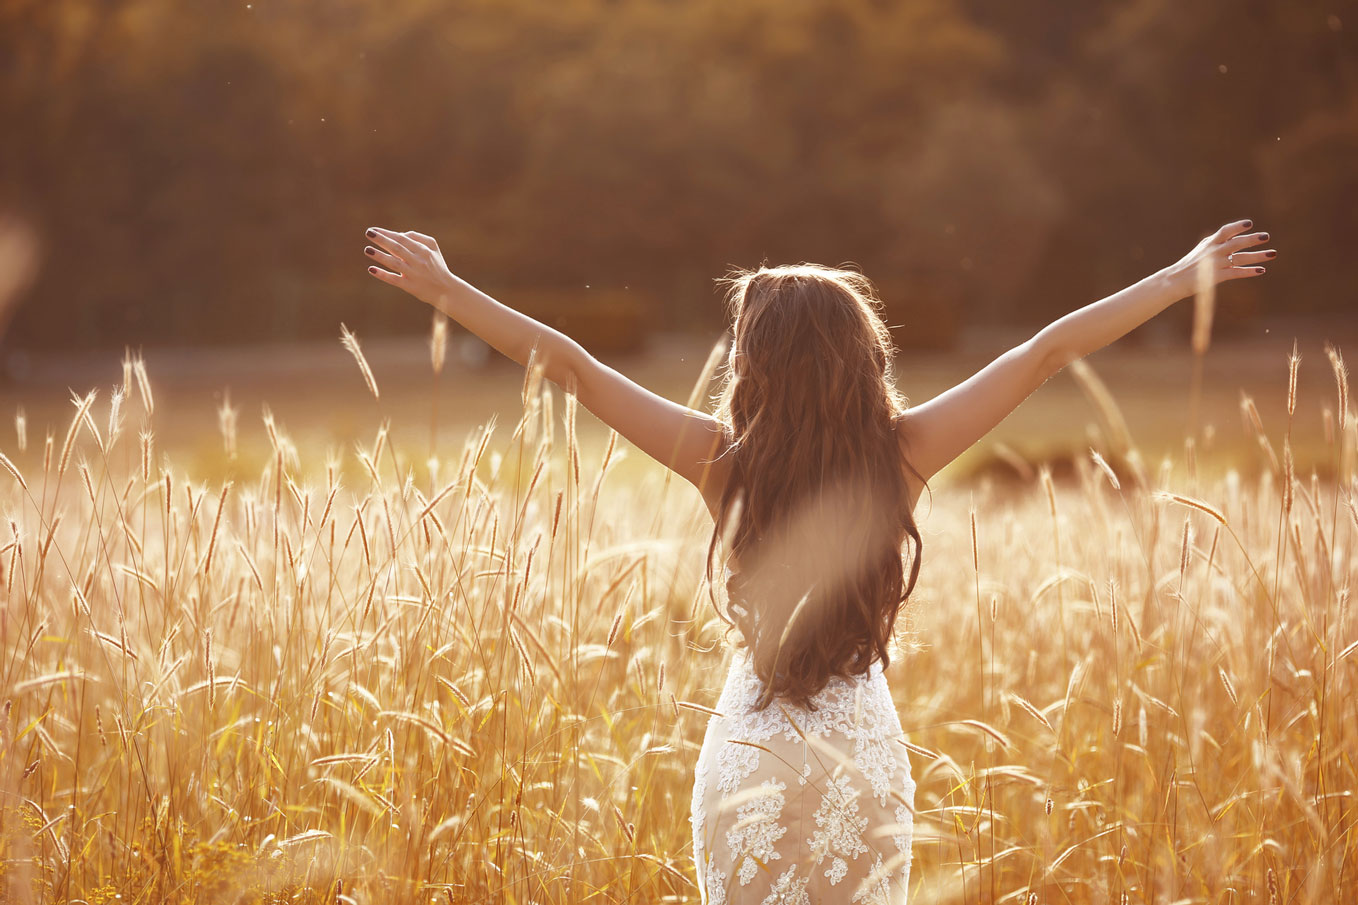 Enjoyment.-Free-woman-arms-outstretched.jpg